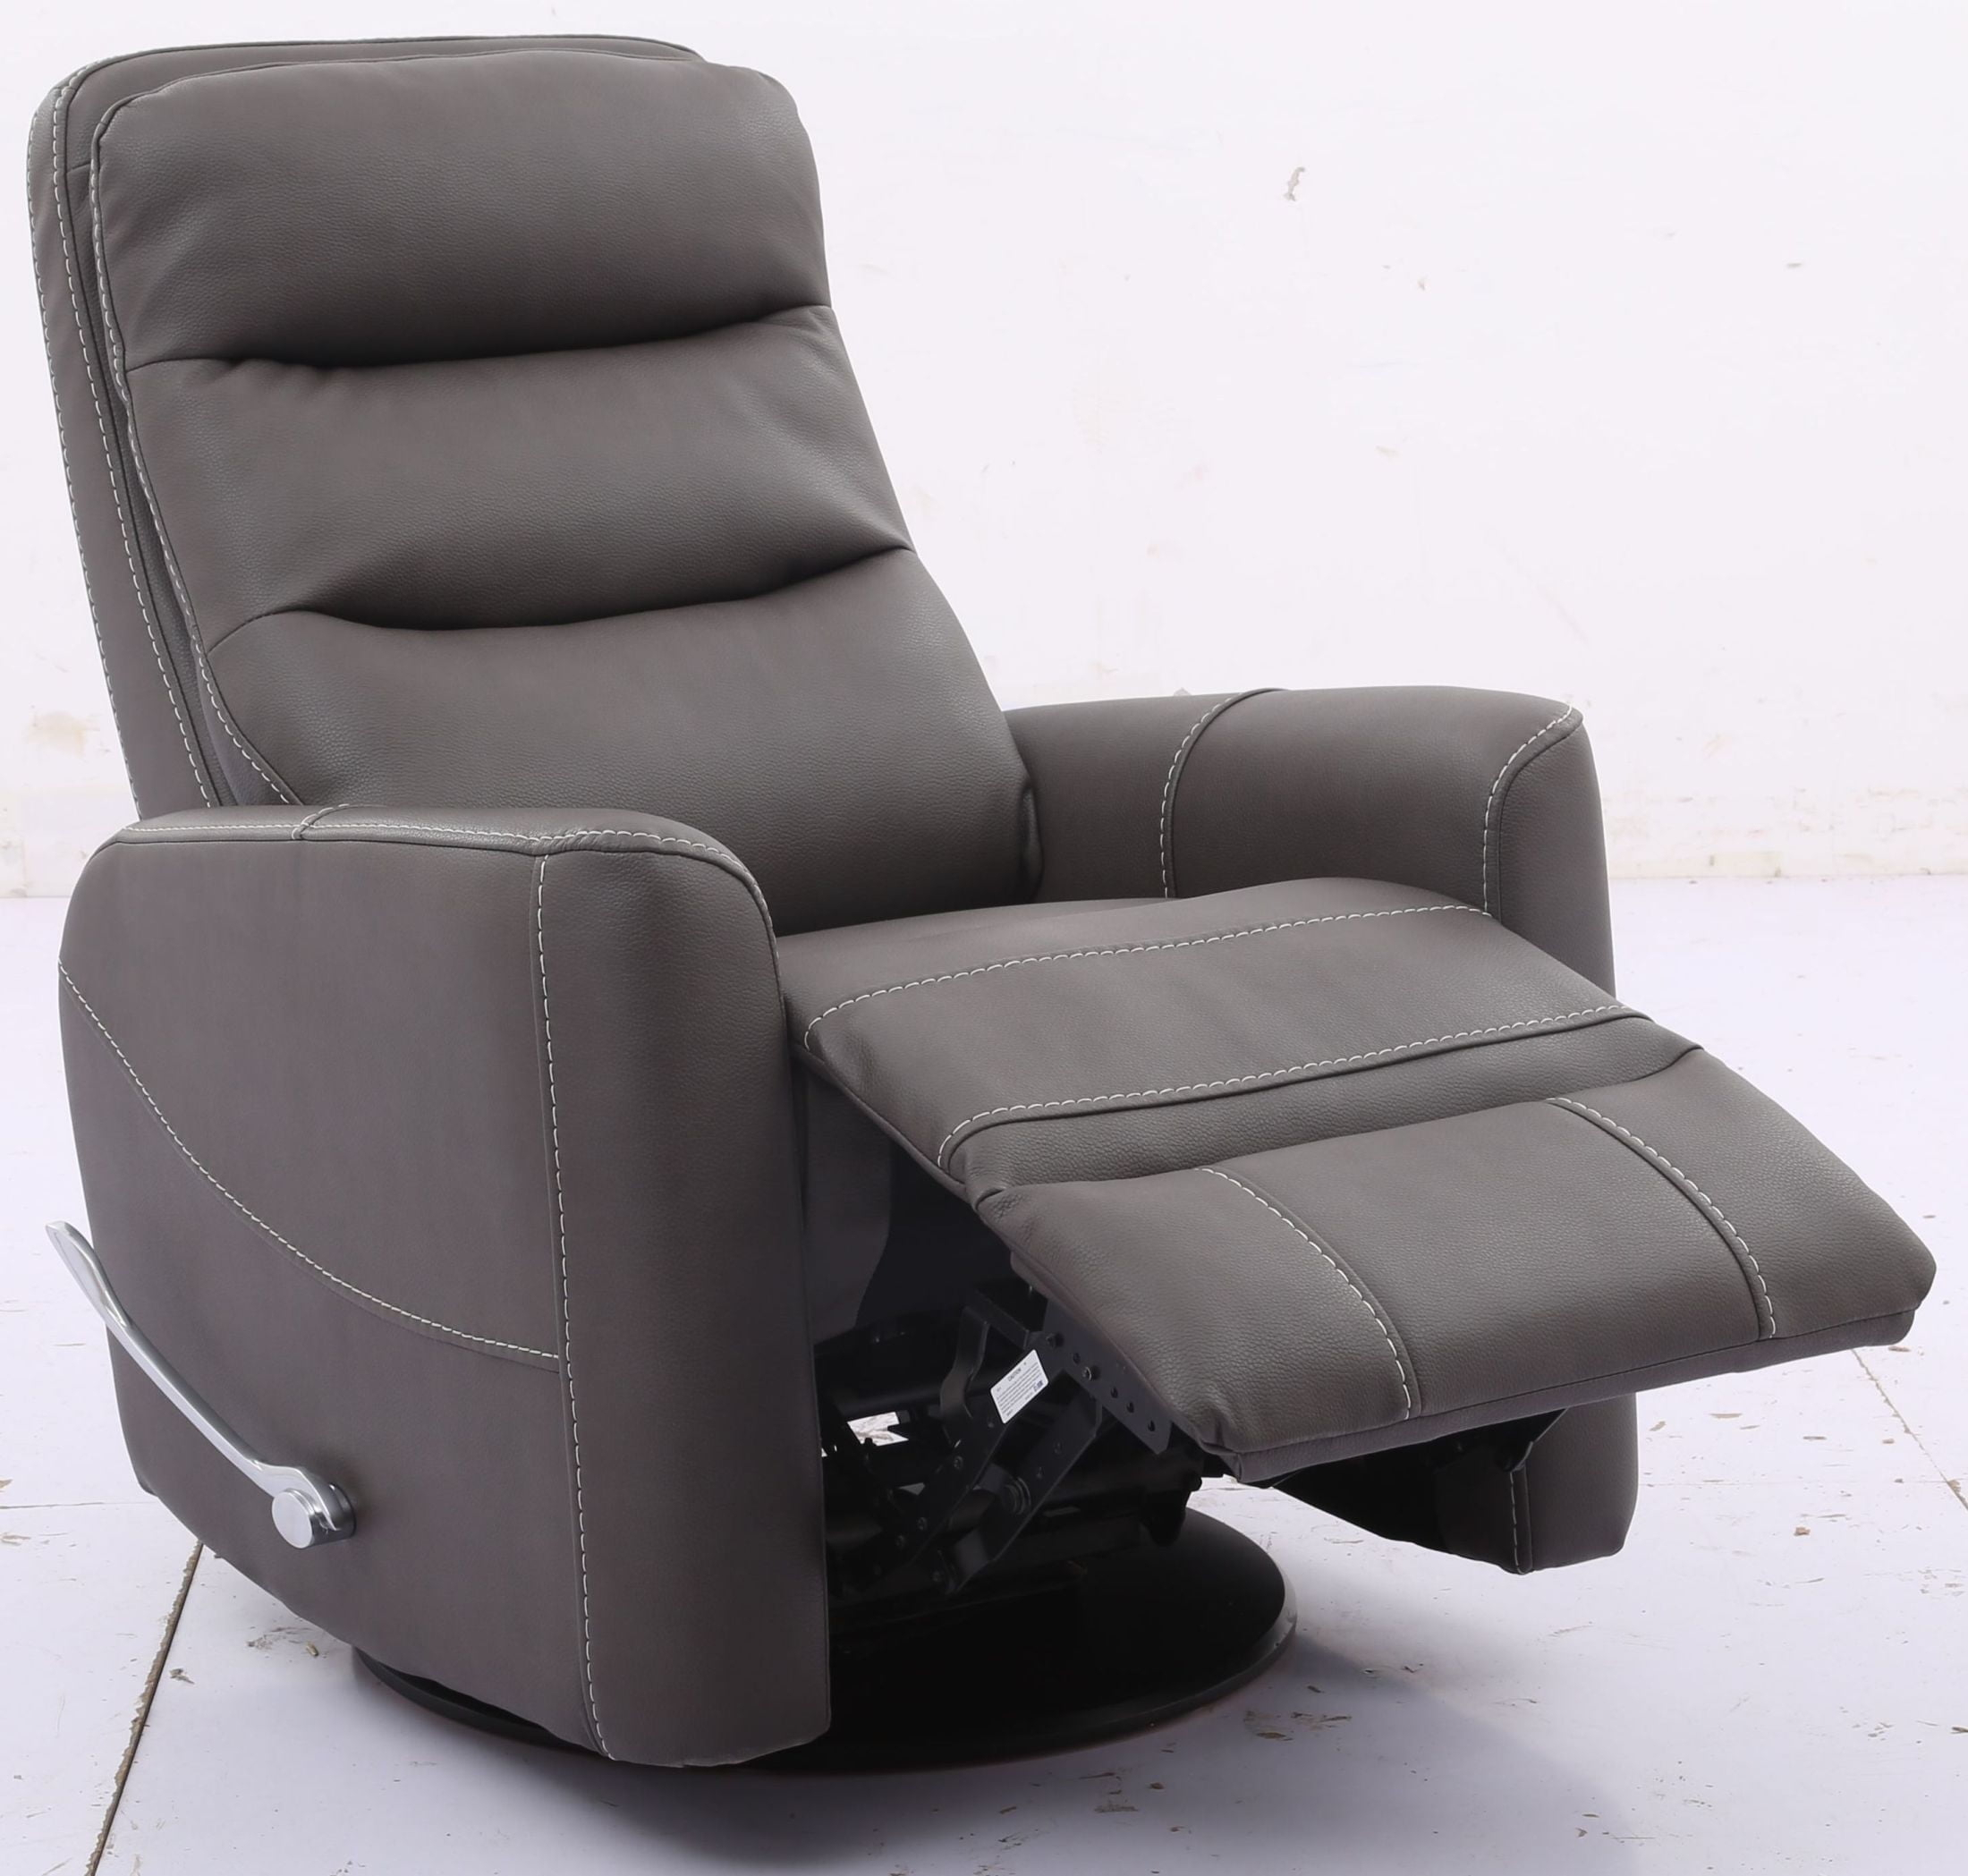 Hercules Haze Swivel Glider Recliner With Articulating Headrest From With Regard To Hercules Chocolate Swivel Glider Recliners (Photo 19 of 25)